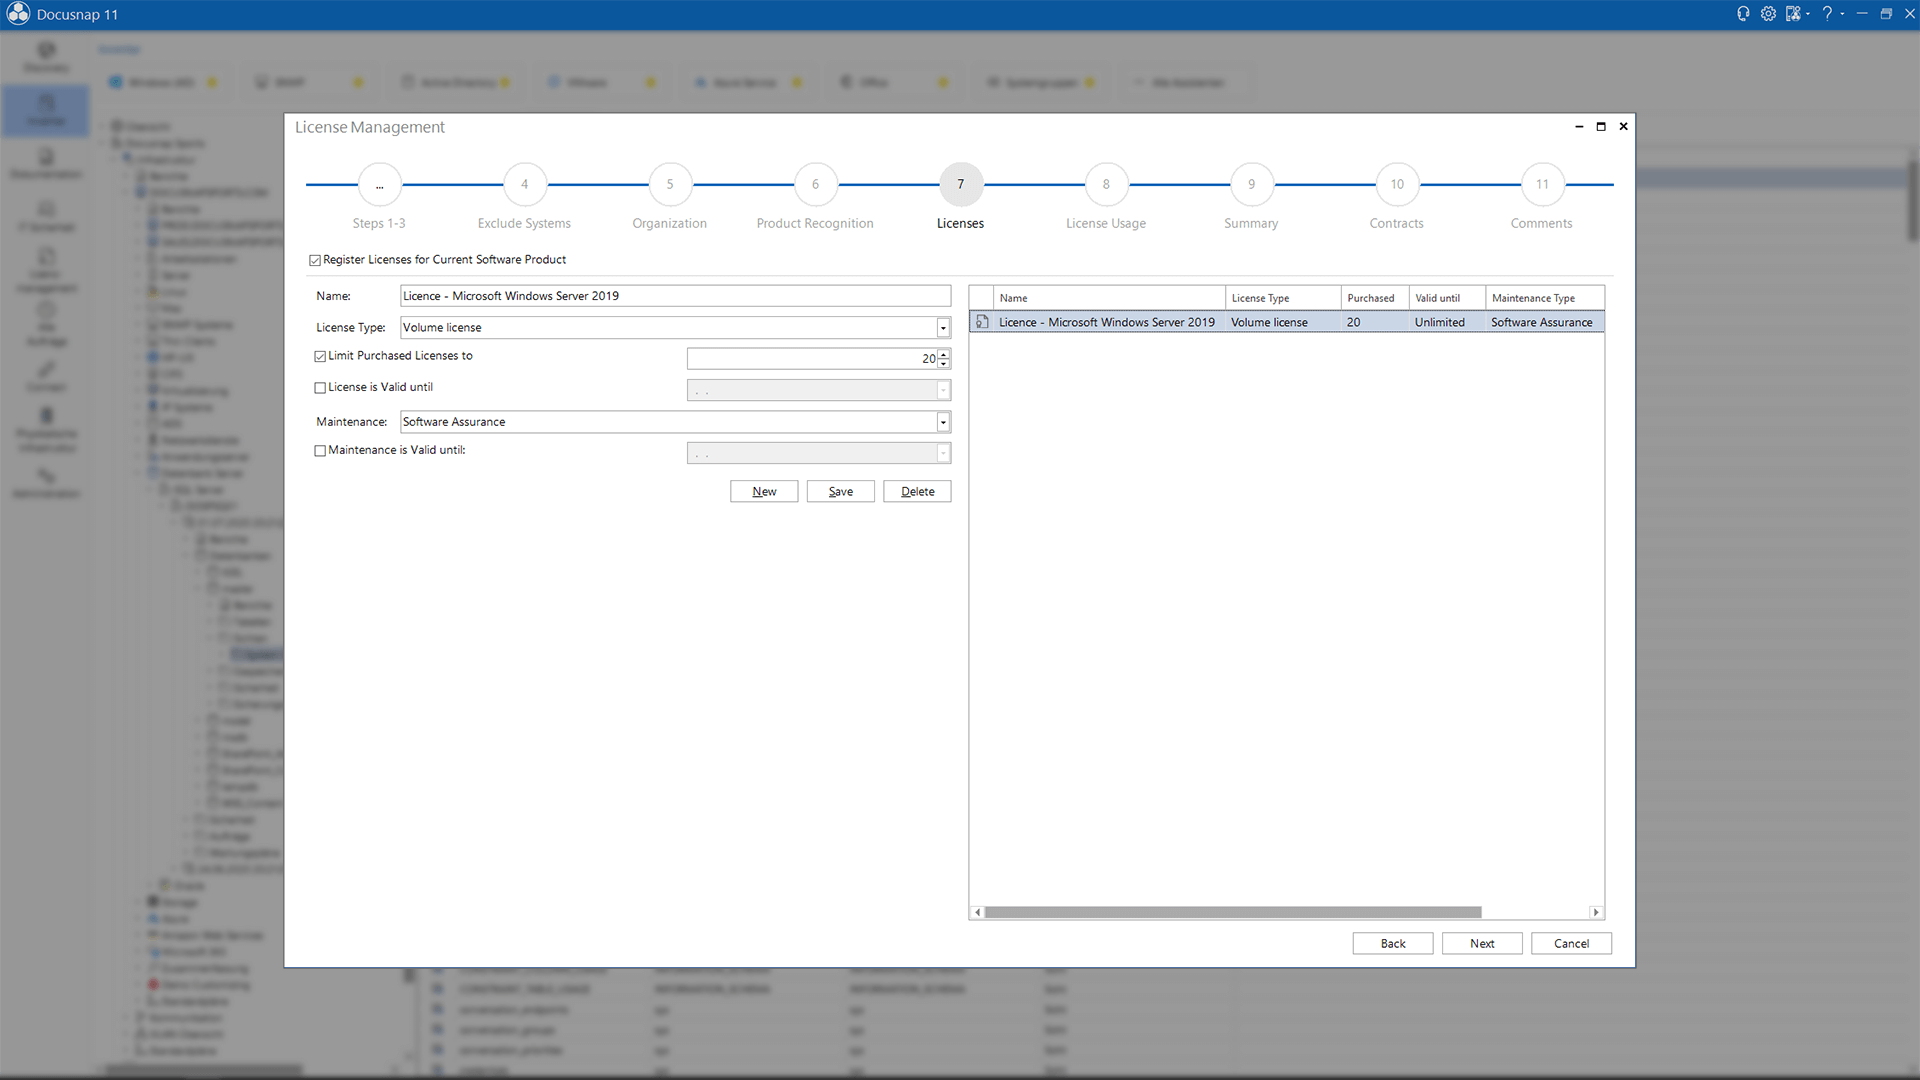 Screenshot: Wizard for entering and managing licenses in the License Management module